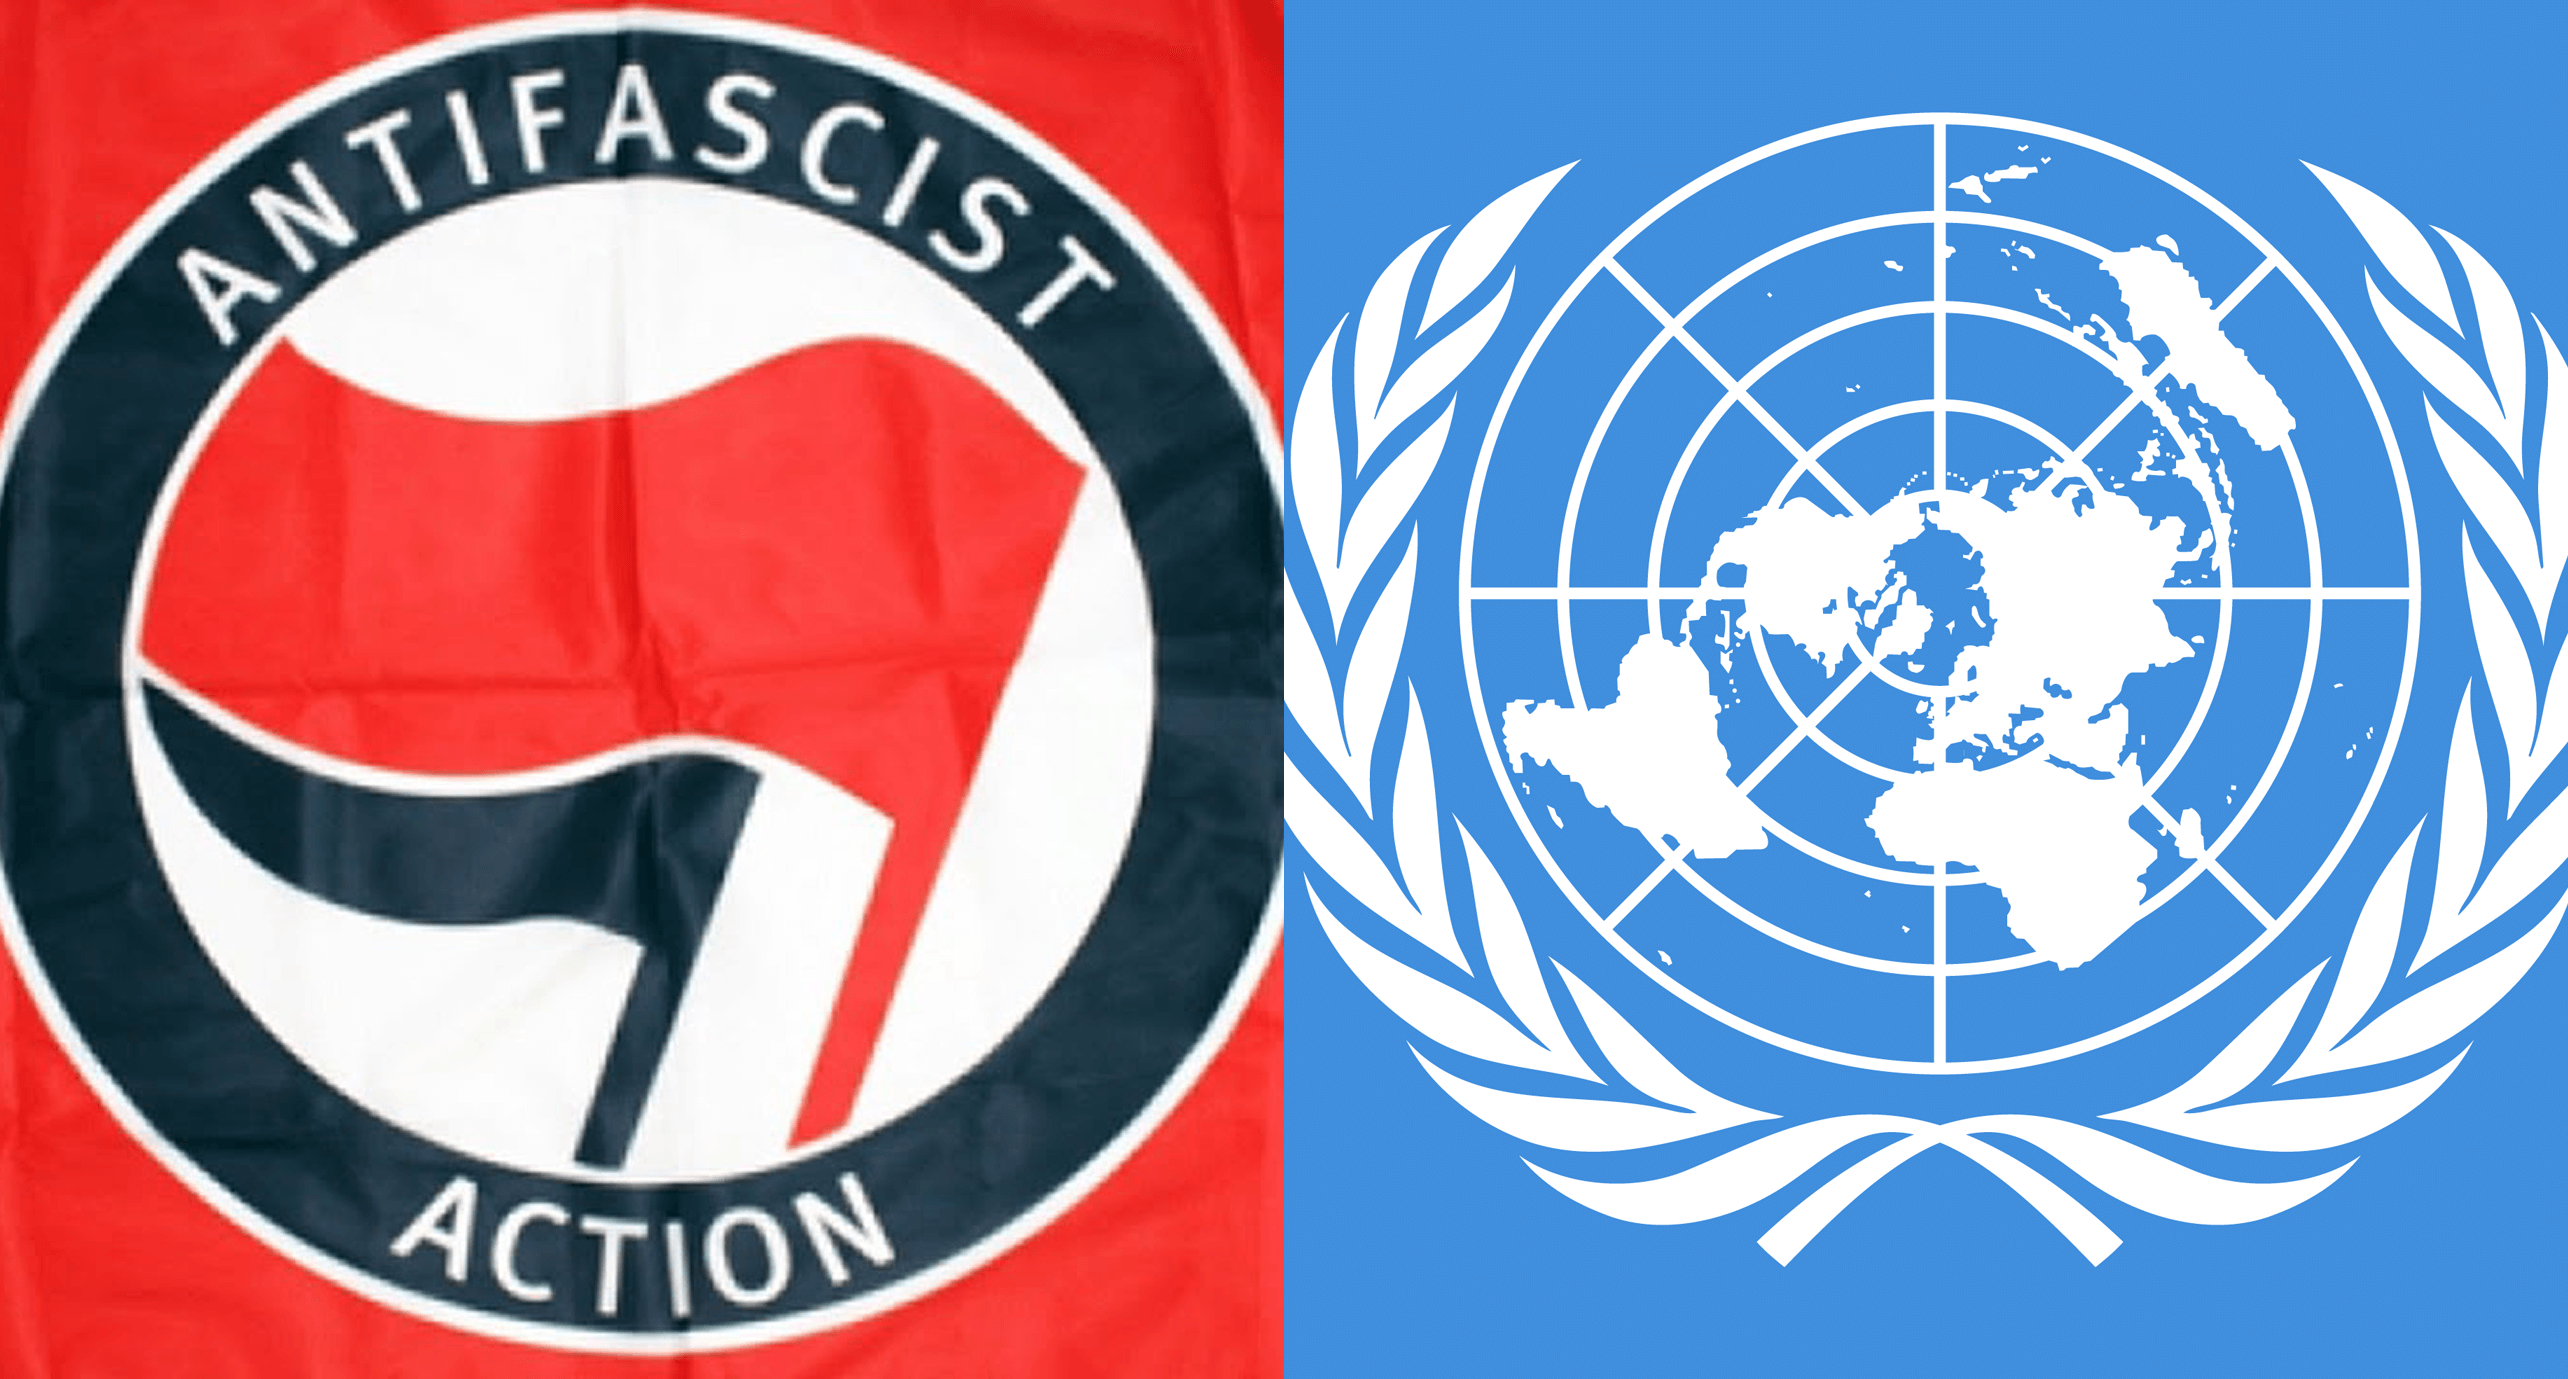 United Nations comes out in support of Antifa